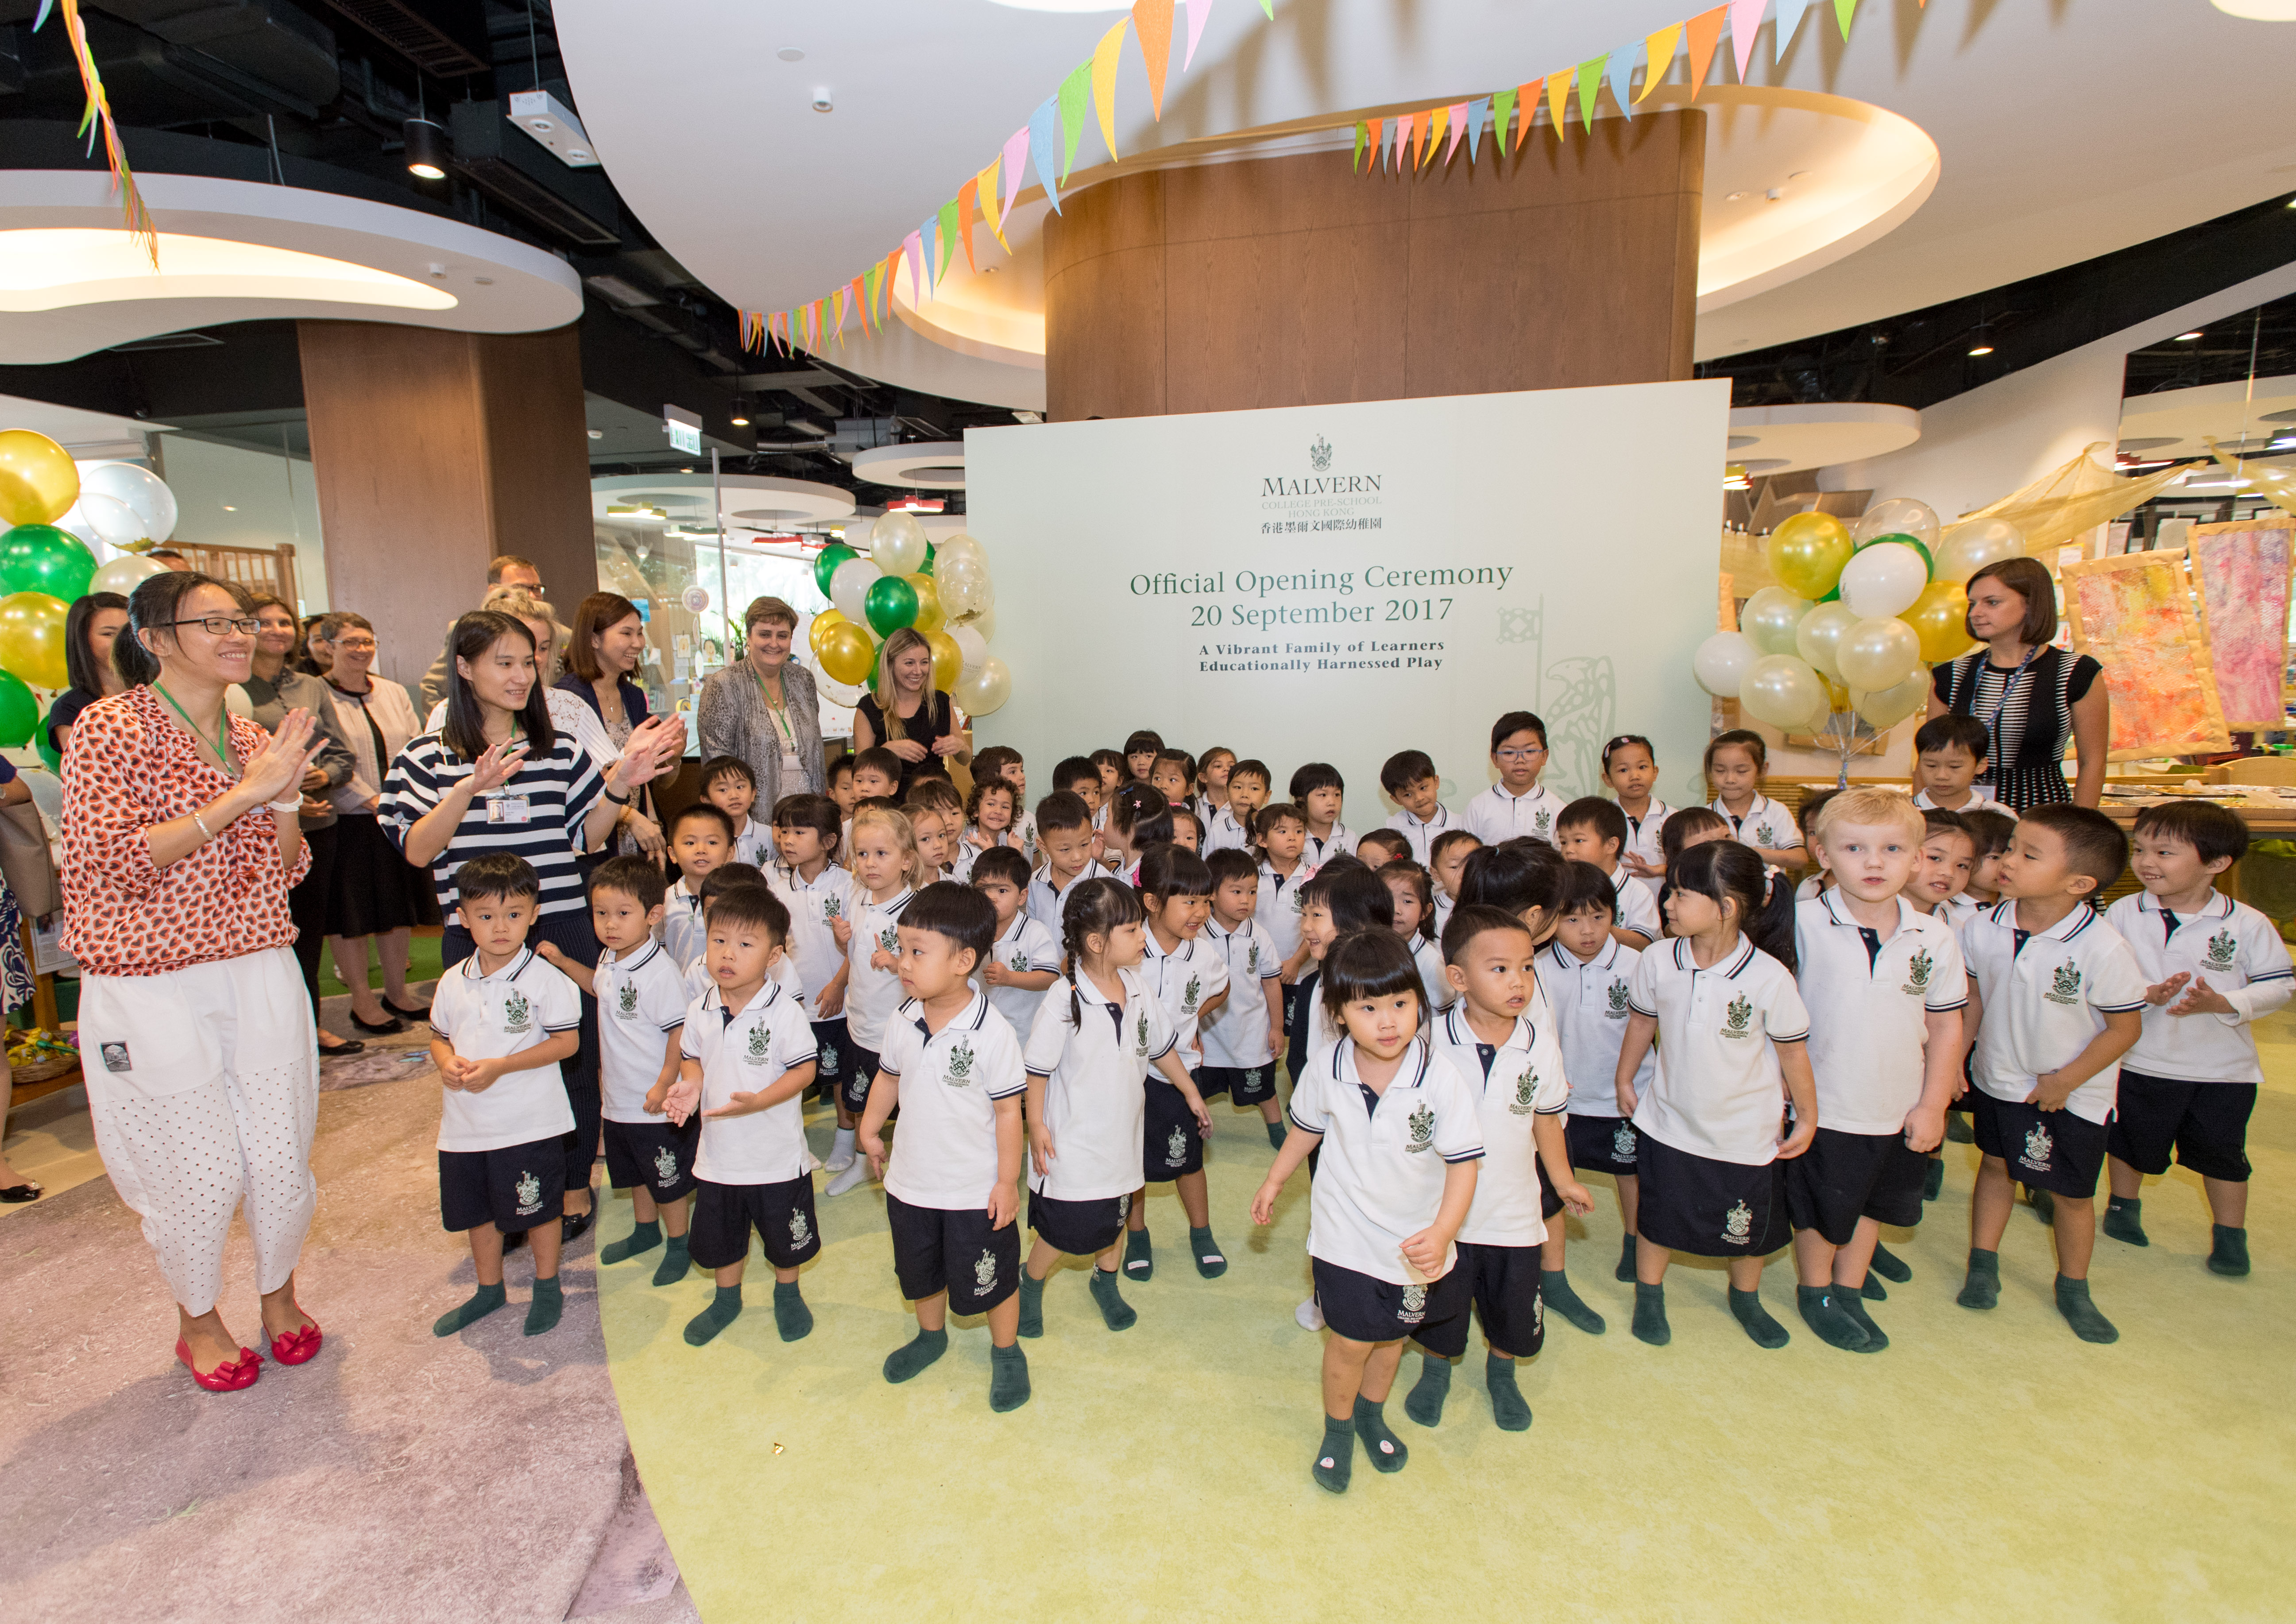 Official Opening Ceremony of Malvern College Pre-School